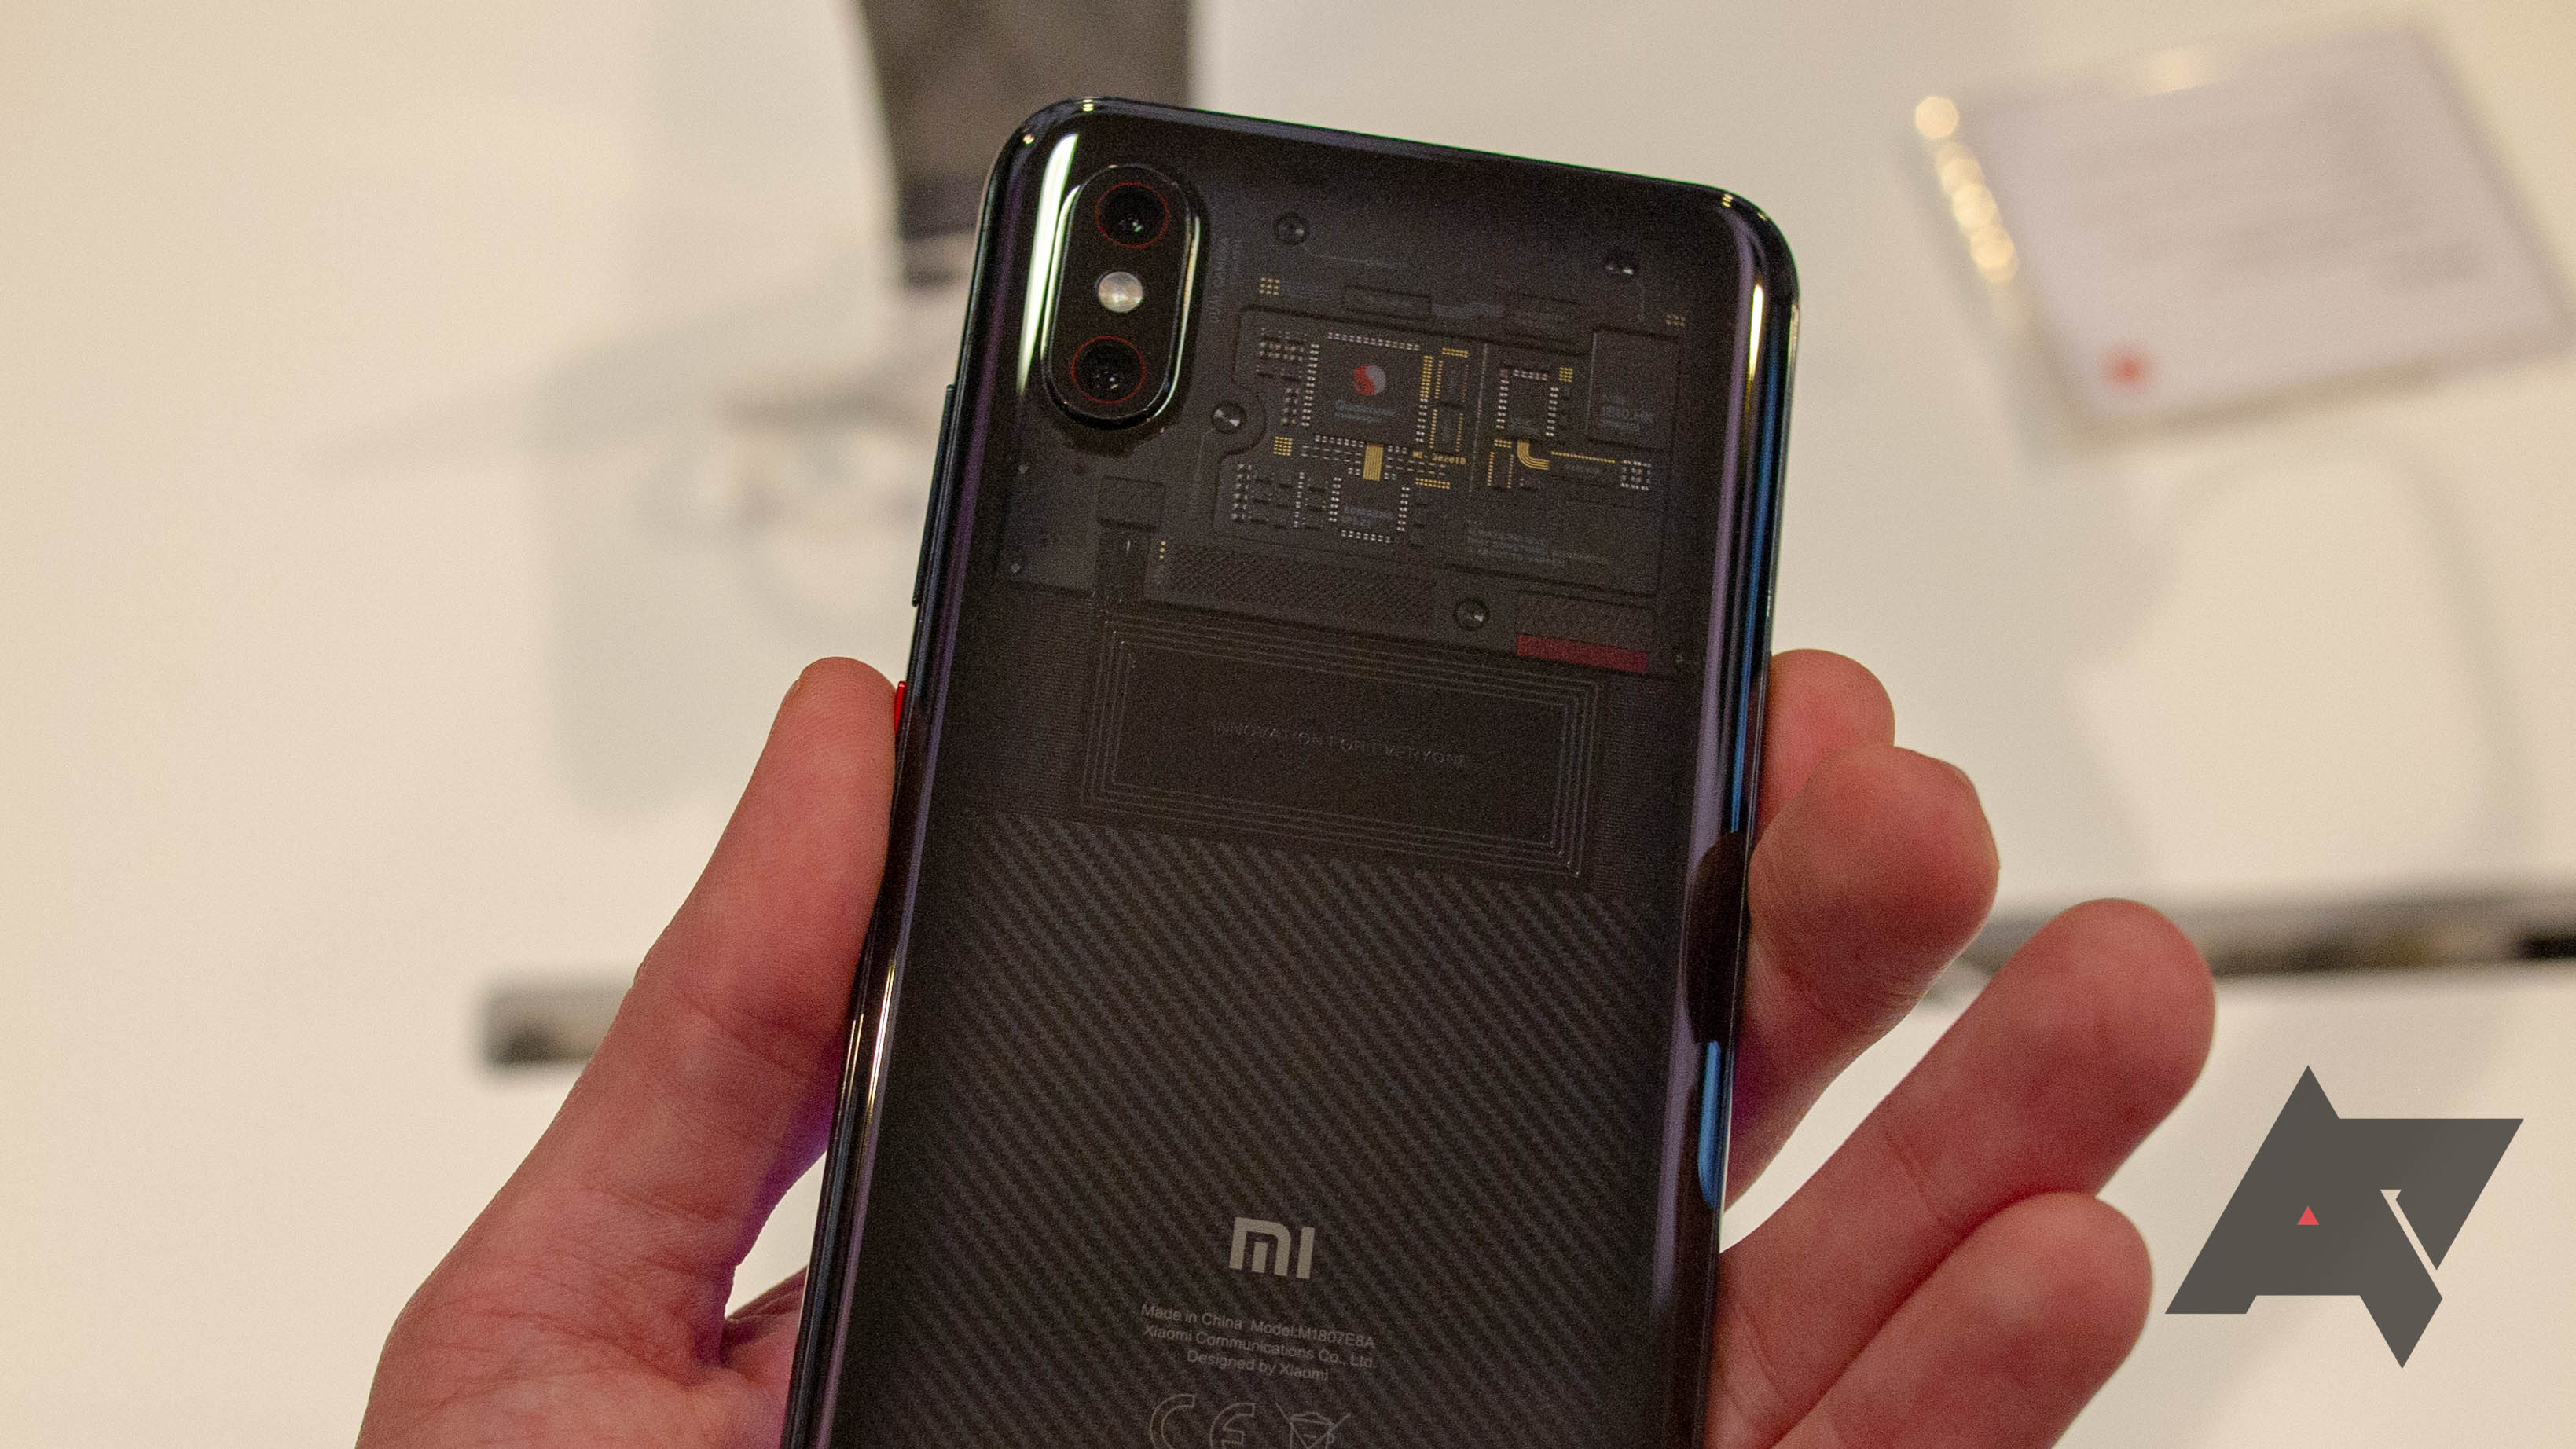 Xiaomi Mi 8 Pro hands-on: IR face unlock and extra RAM for the same